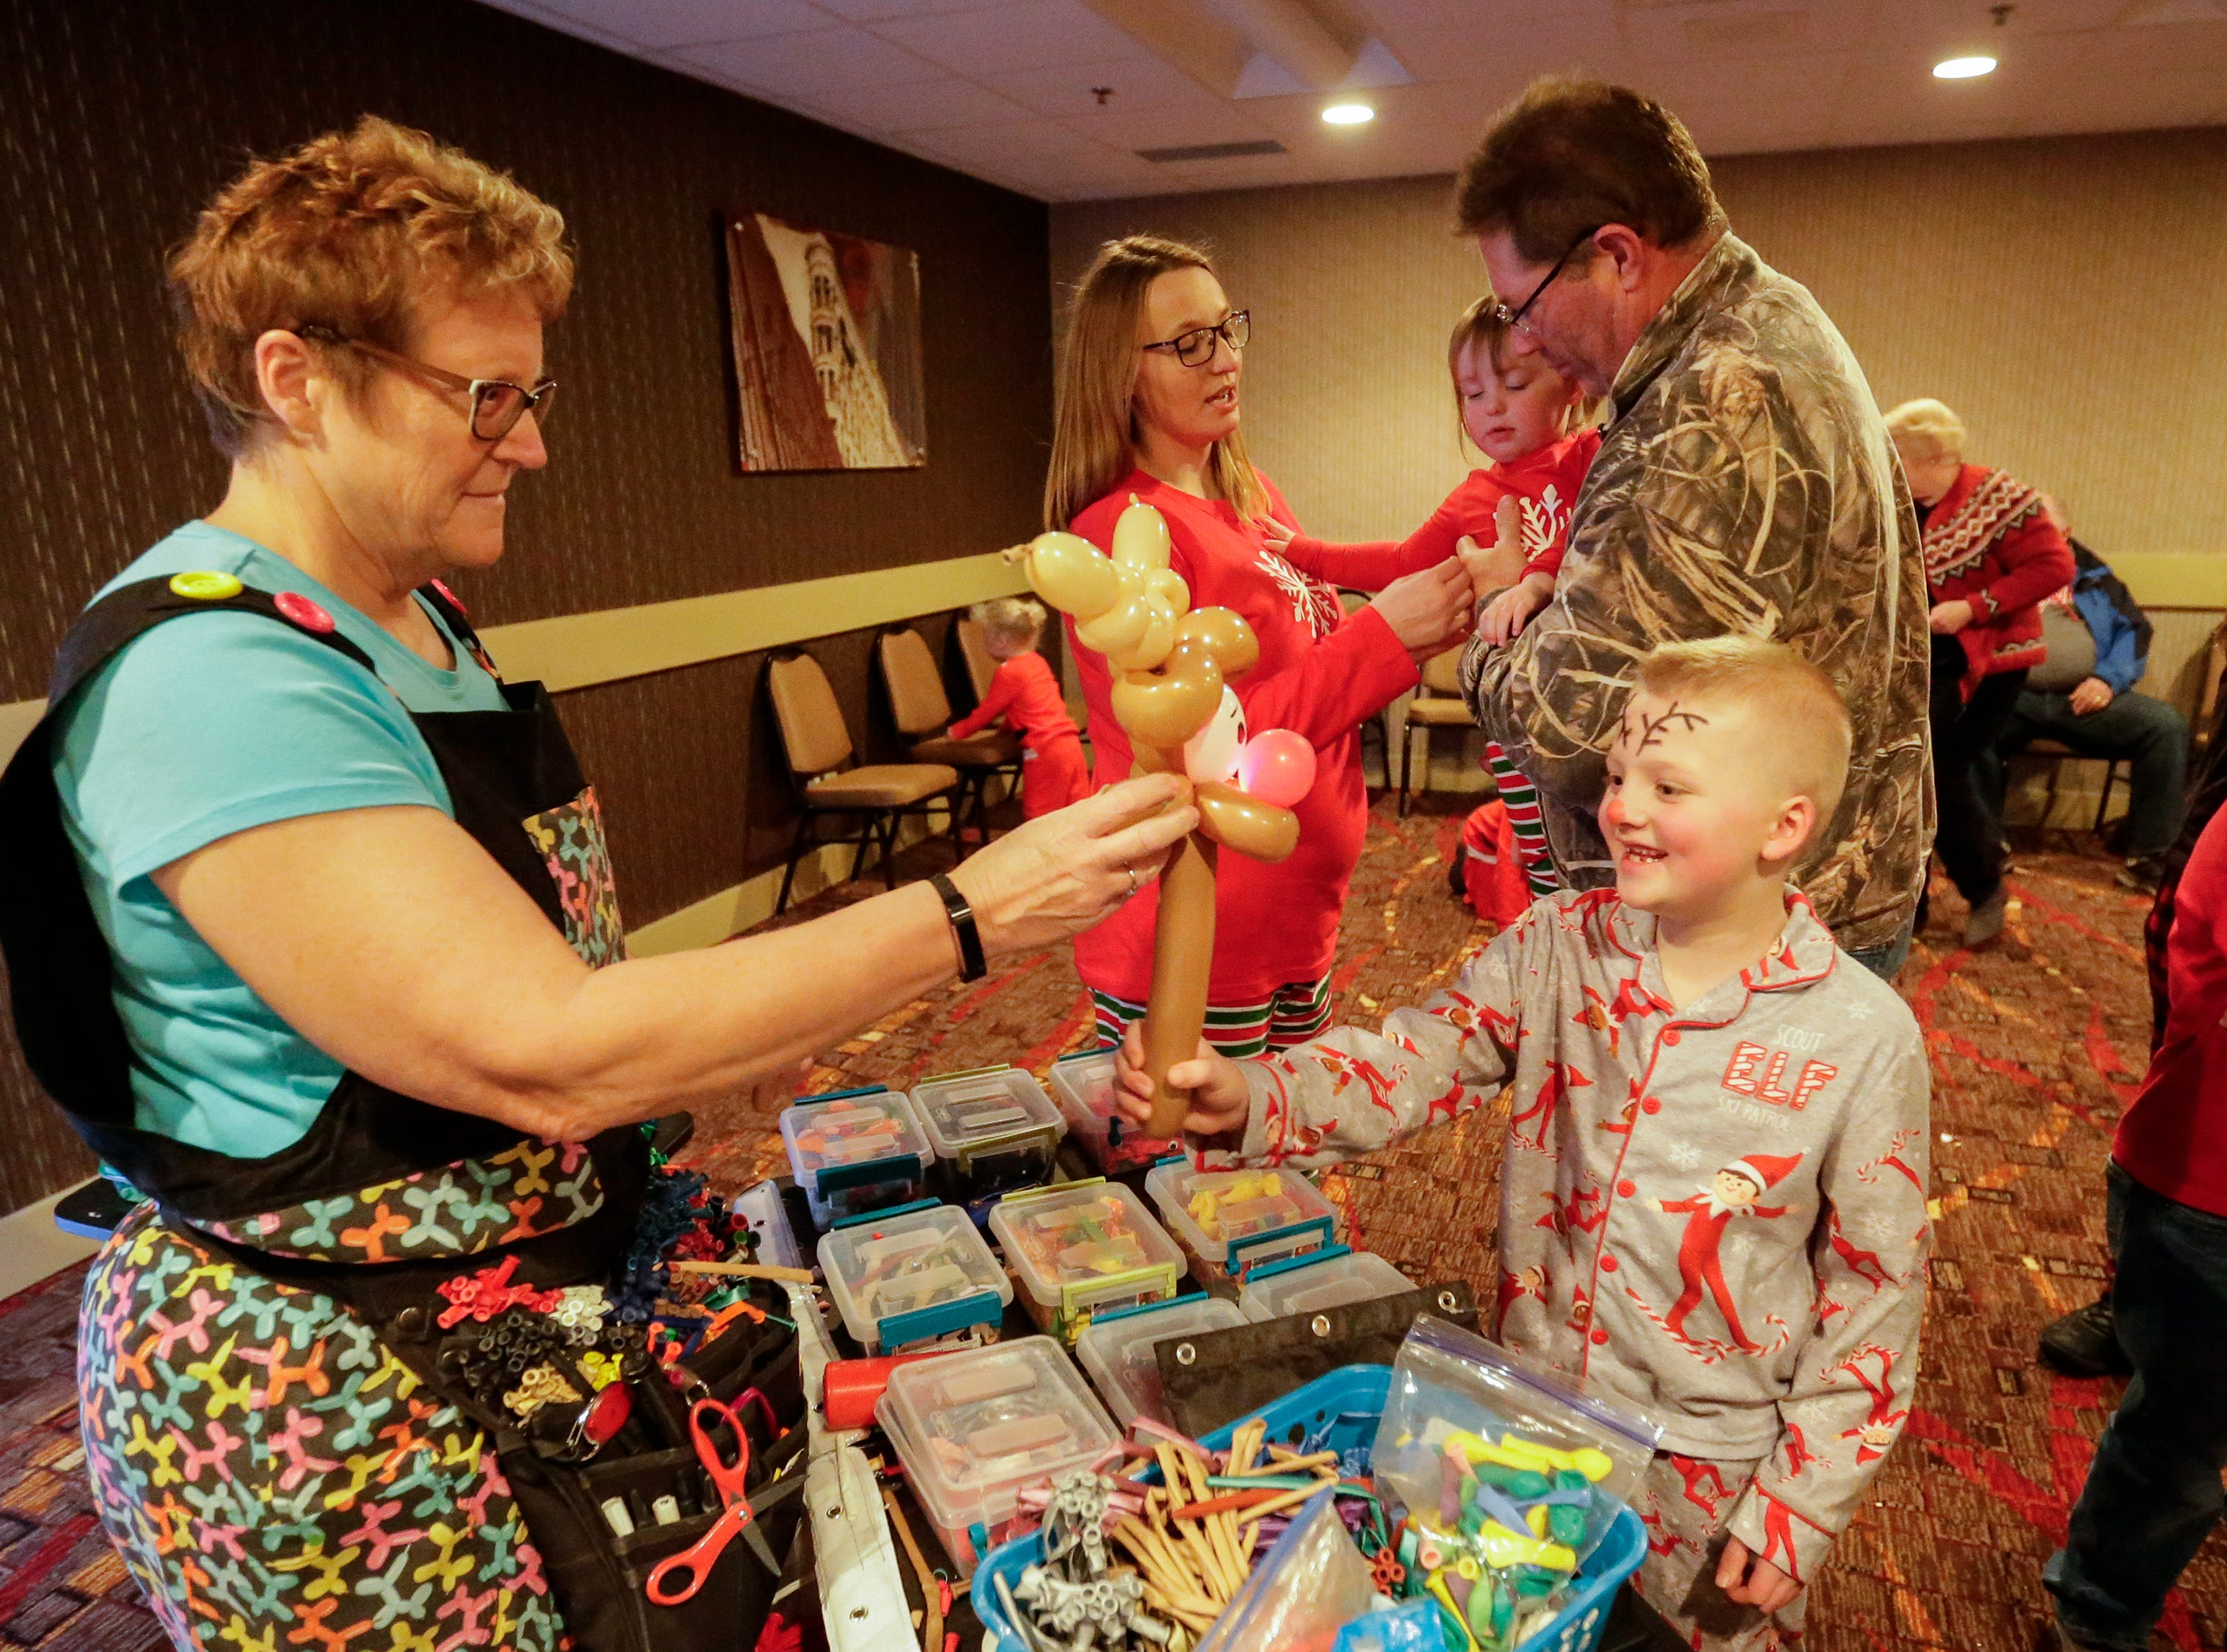 Jax Arkens, 7, of Mishicot, takes a Rudolph the Red Nosed Reindeer ballon animal at Santa's North Pole at the Holiday Inn Saturday, December 8, 2018, in Manitowoc, Wis. Joshua Clark/USA TODAY NETWORK-Wisconsin